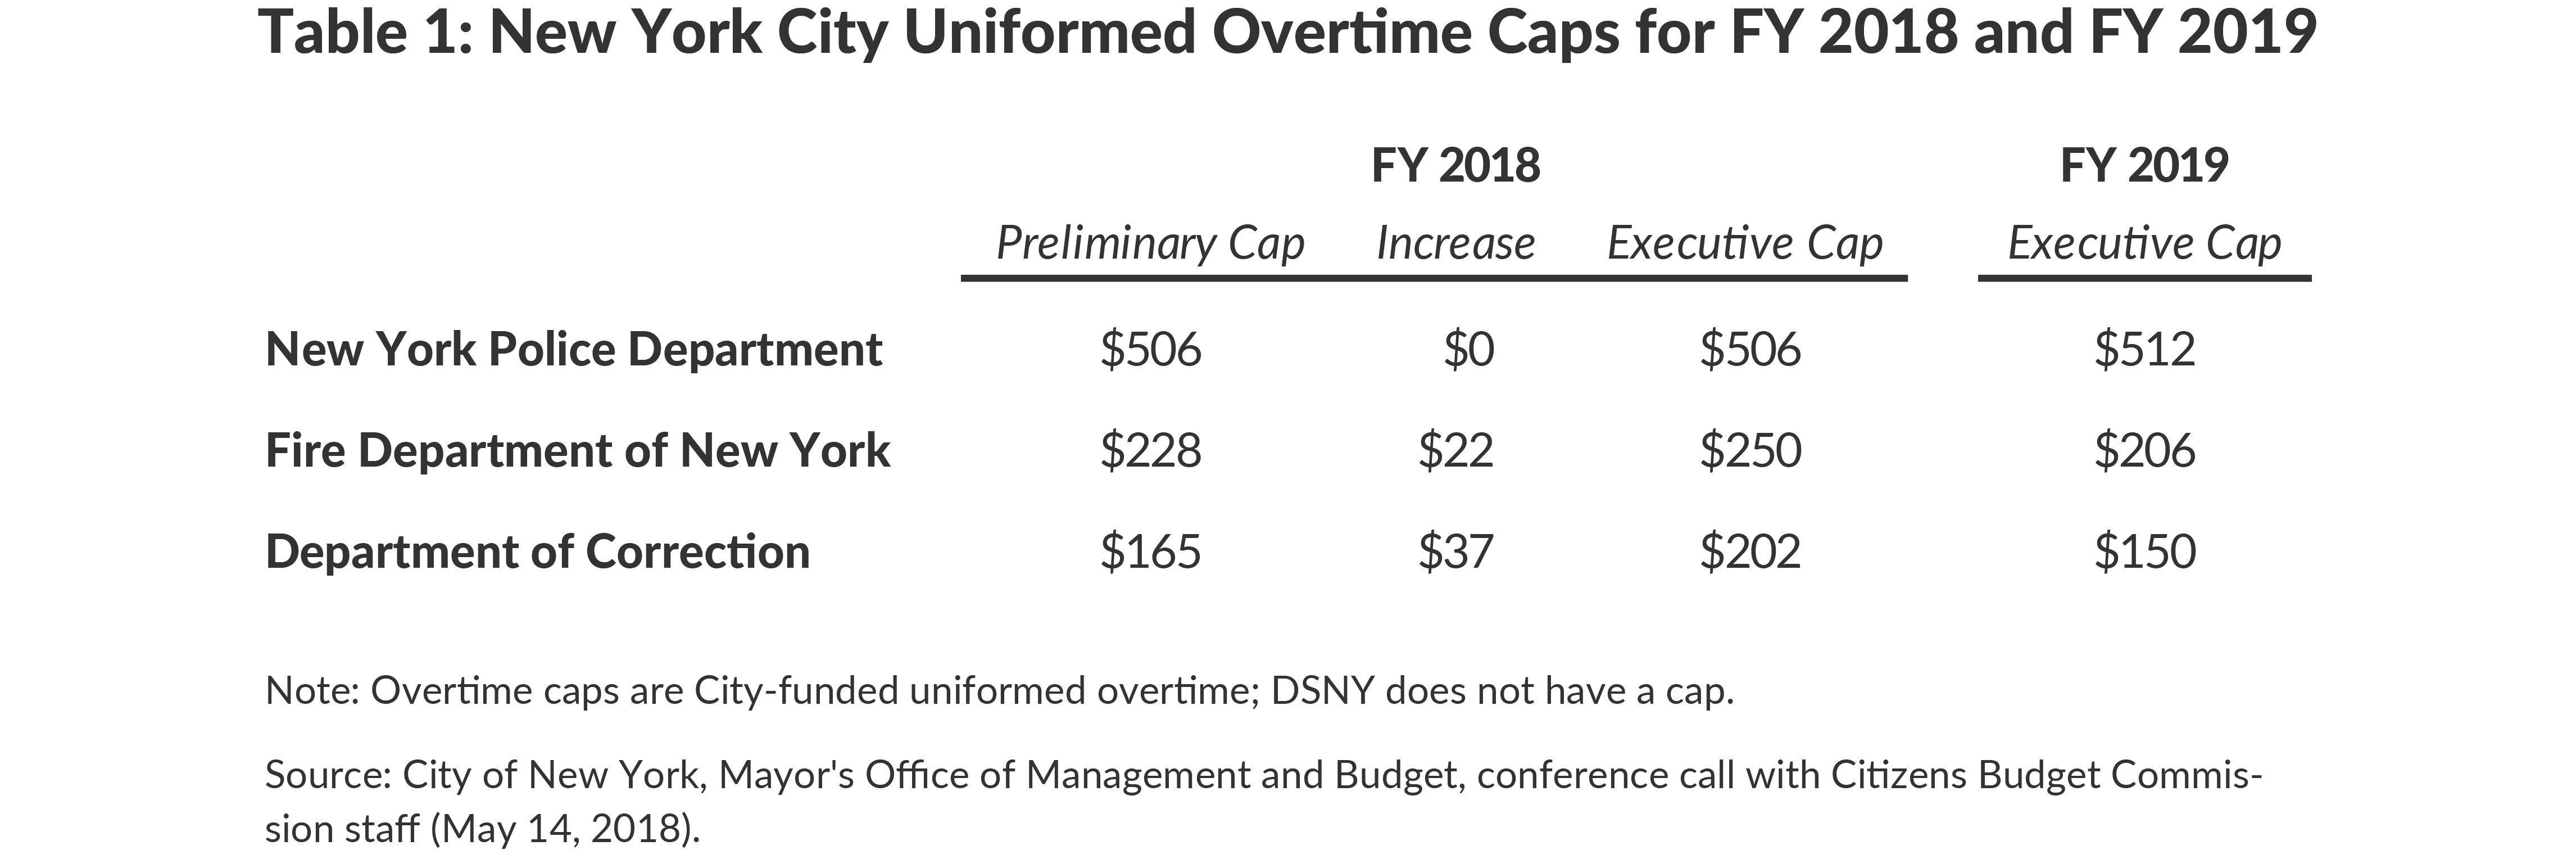 Table 1: New York City Uniformed Overtime Caps for FY 2018 and FY 2019